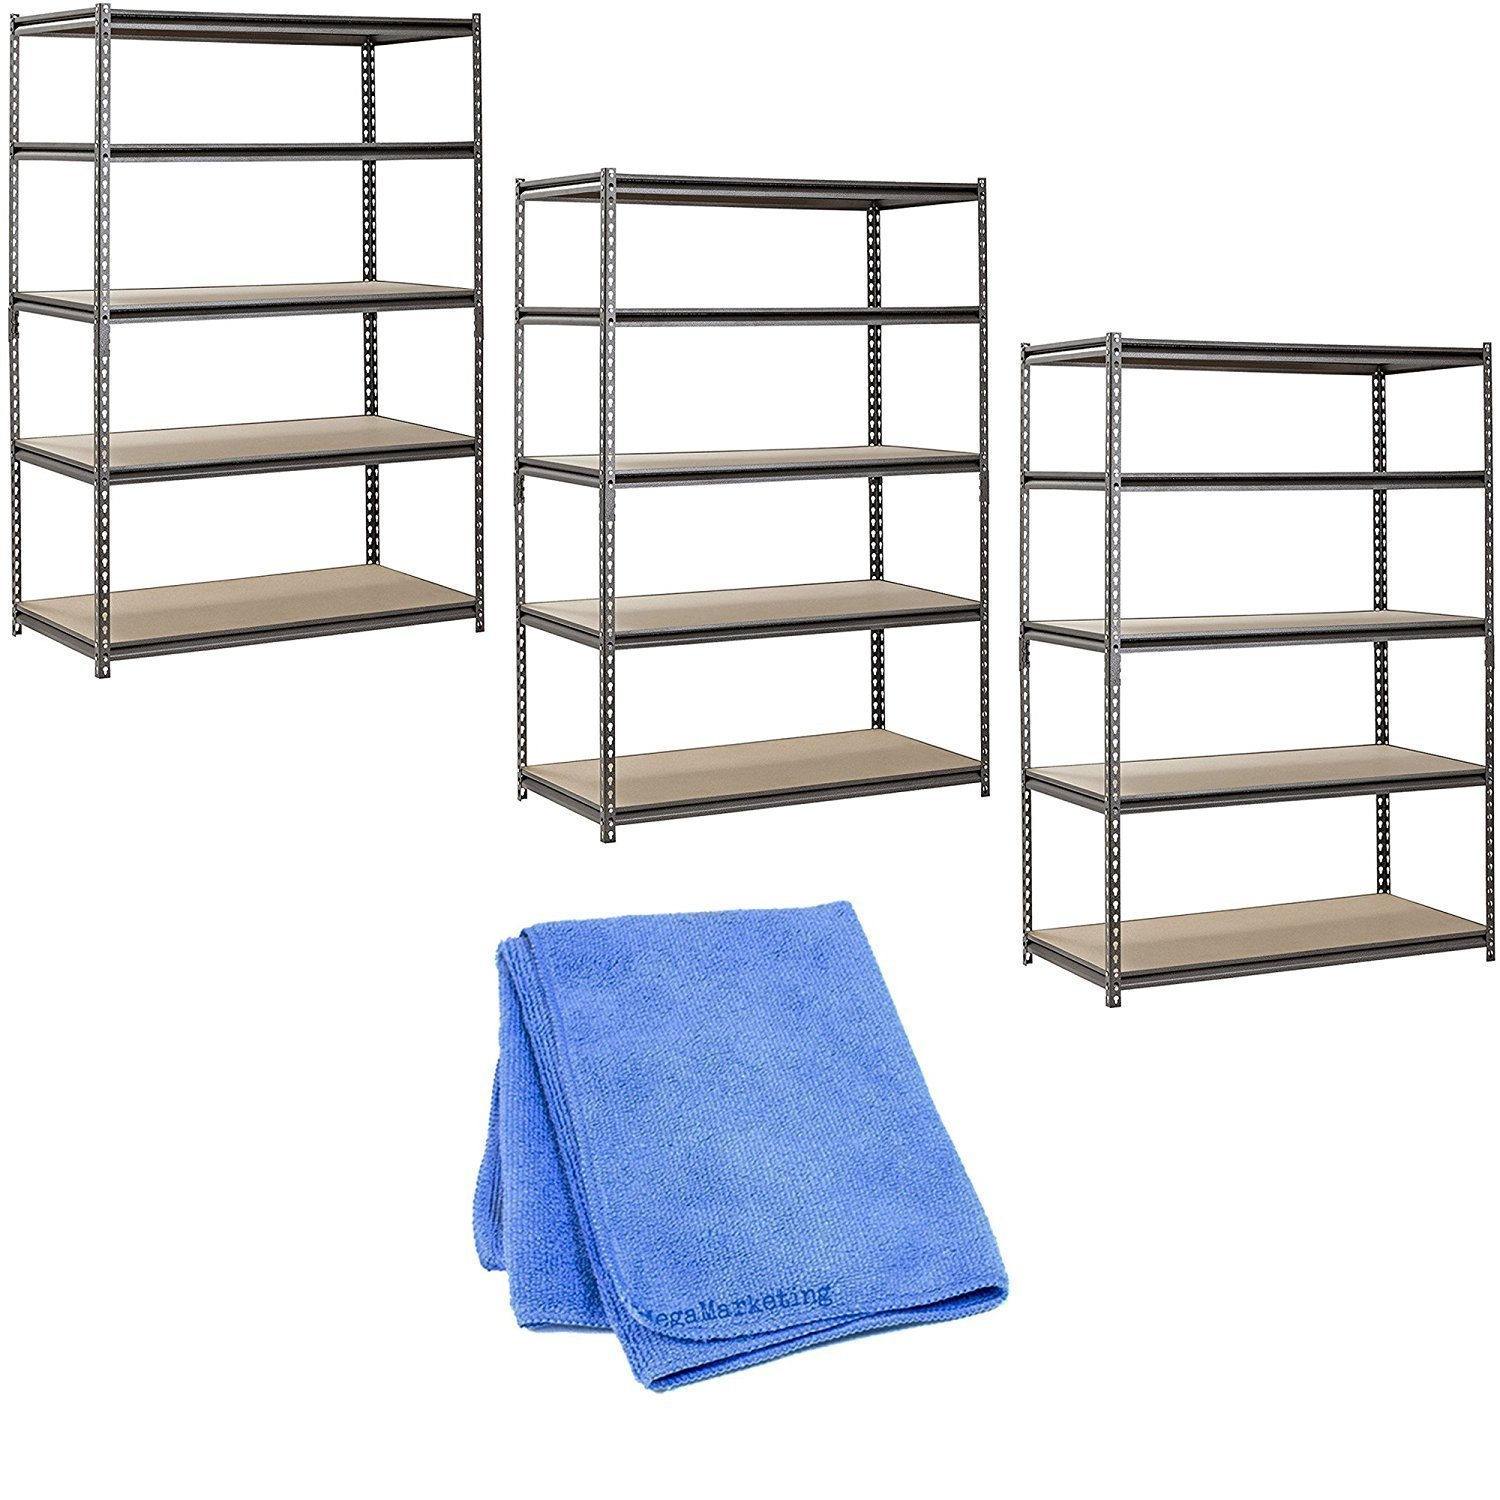 Muscle Rack UR482472PB5PAZ-SV Silver Vein Steel Storage Rack, 5 Adjustable Shelves, 4000 lb. Capacity, 72'' Height x 48'' Width x 24'' Depth (3-Pack) with Towel Cleaner by Muscle Rack